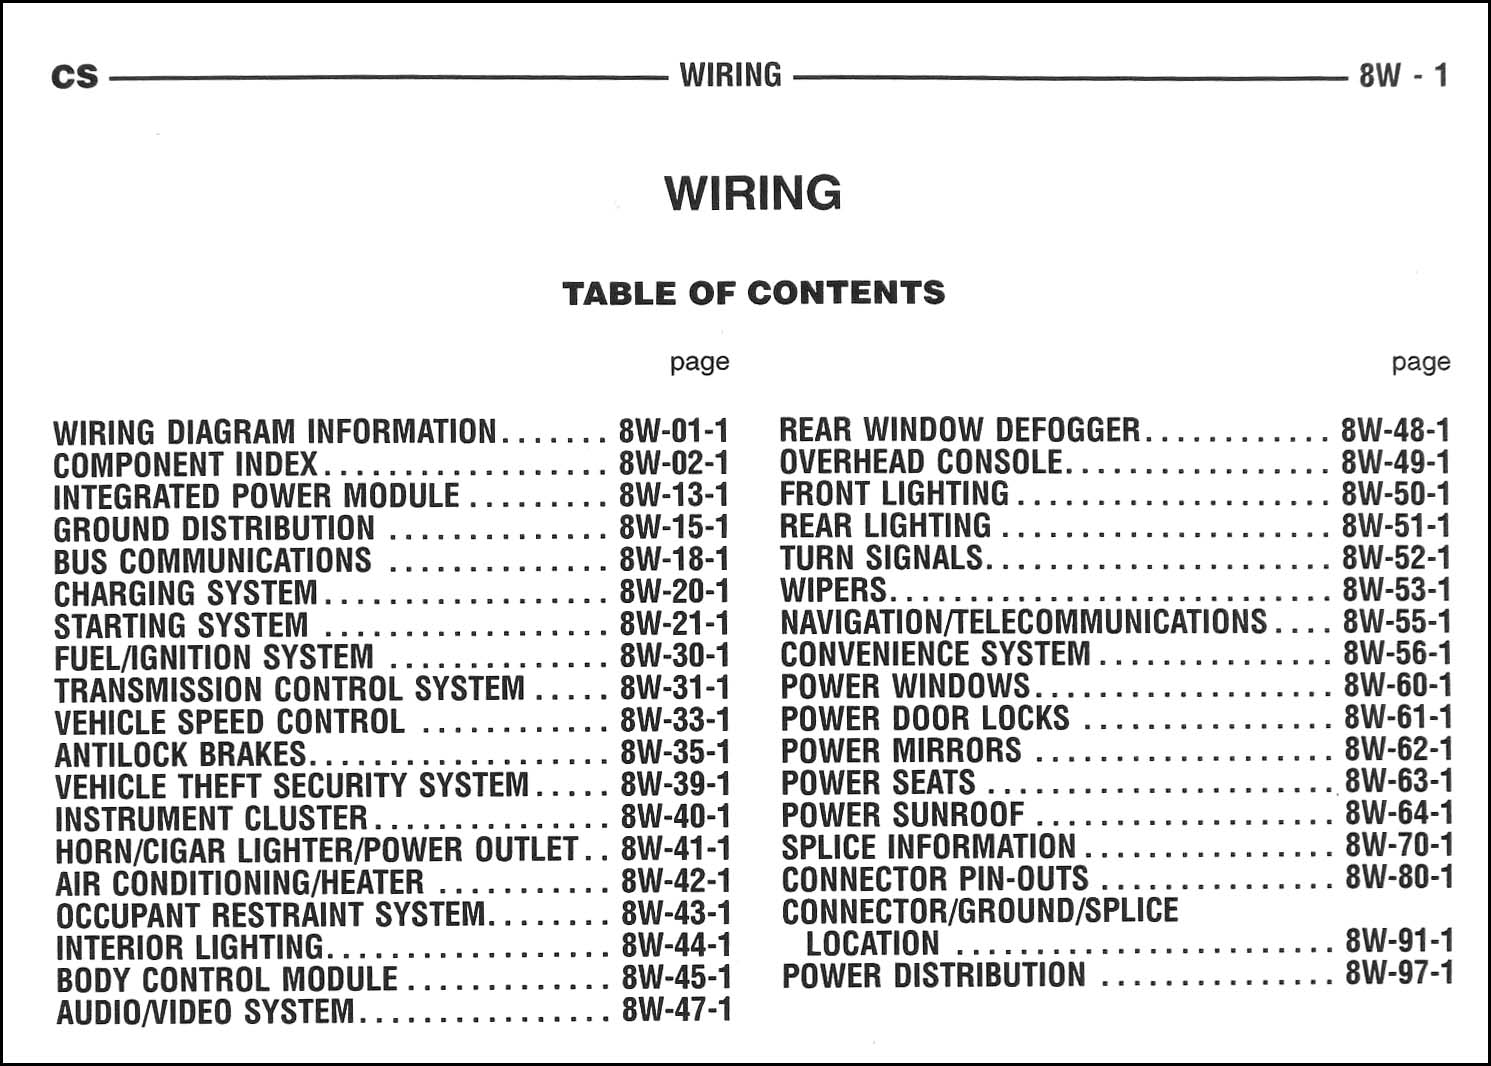 2005 Chrysler Pacifica Wiring Diagram Manual Original. Table of Contents Page